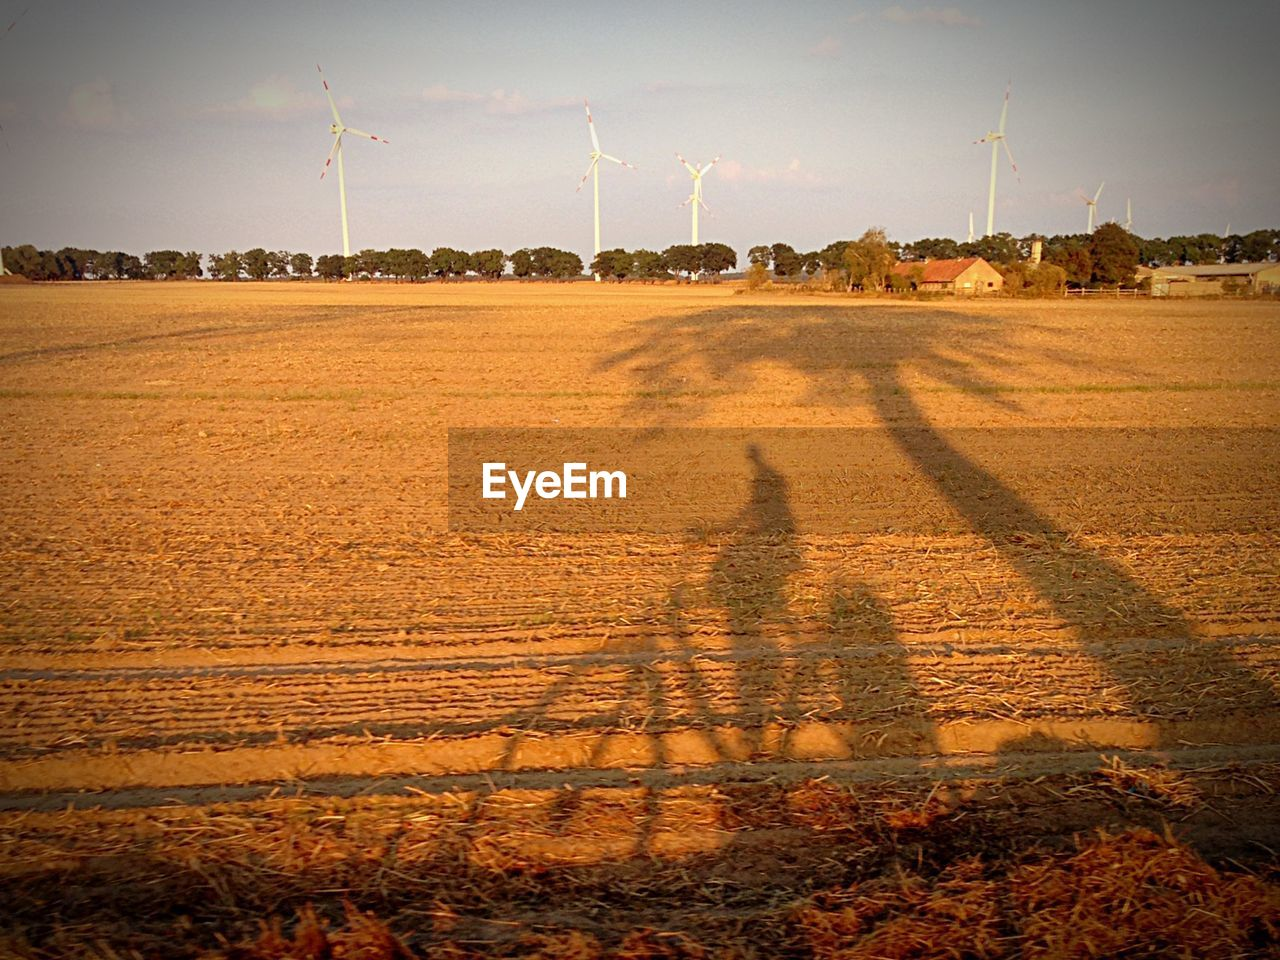 Shadow of person riding bicycle on field